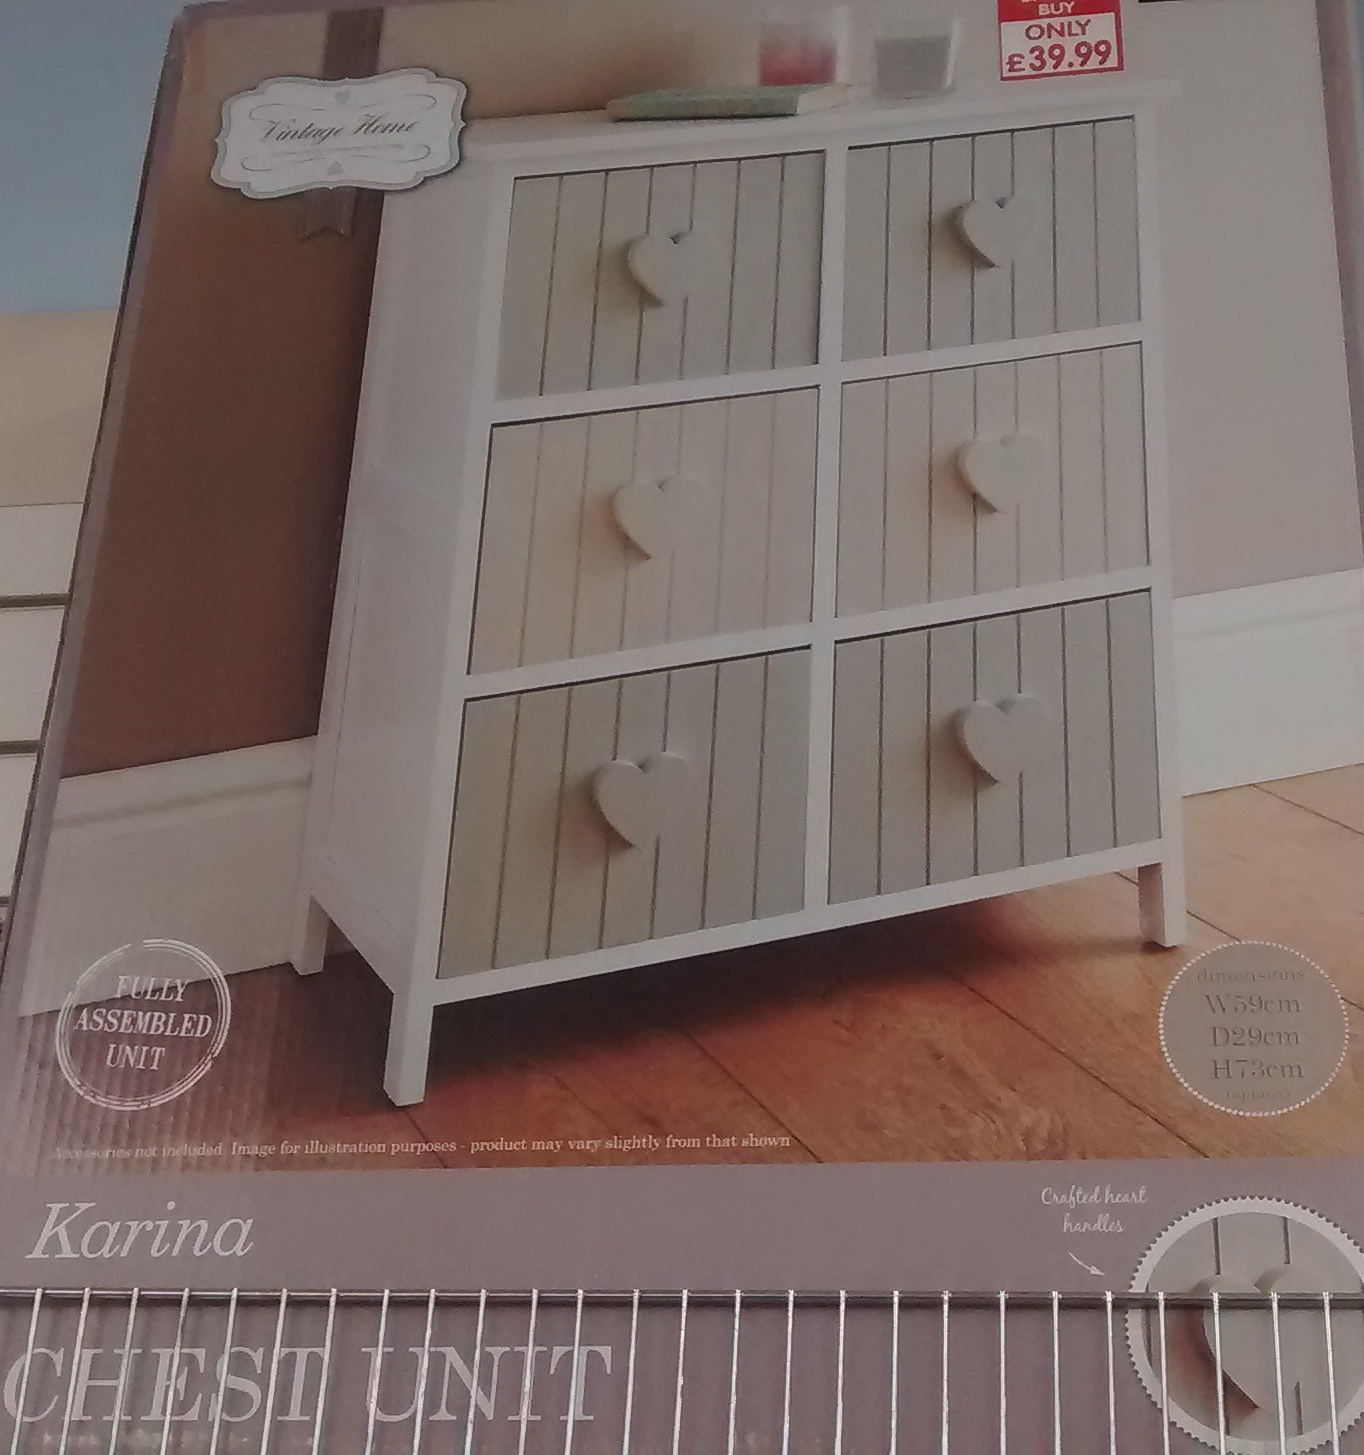 for home bargains other than drawer chest unit floating shelves bathroom vanity shelf reclaimed wood bar ikea lack white small corner wall mounted boxes walk wardrobe closed shoe